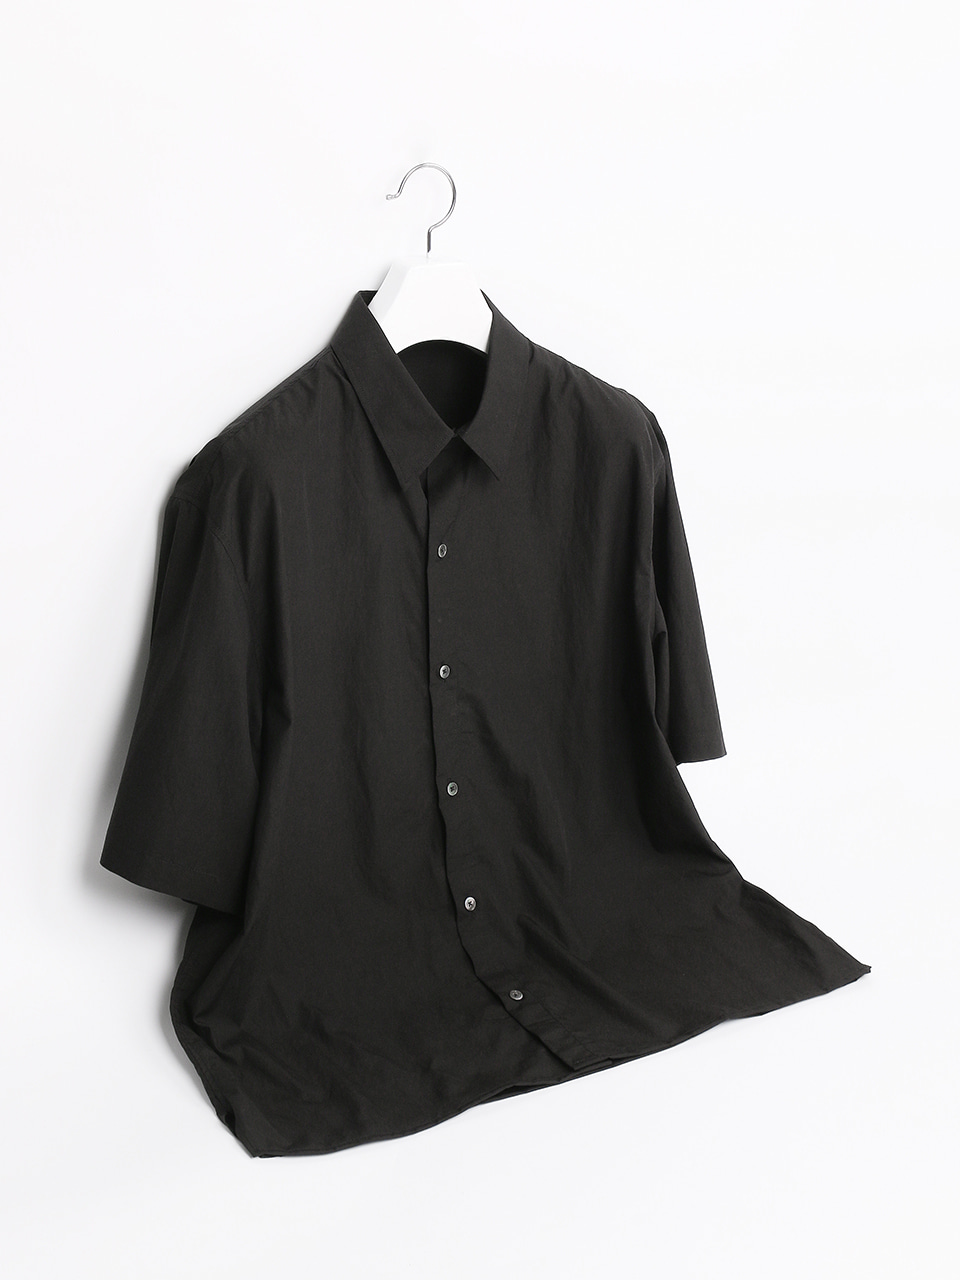 MULTI OPEN HALF SHIRTS VER.YOKE / BLACKATE STUDIOS(에이티이 스튜디오스)